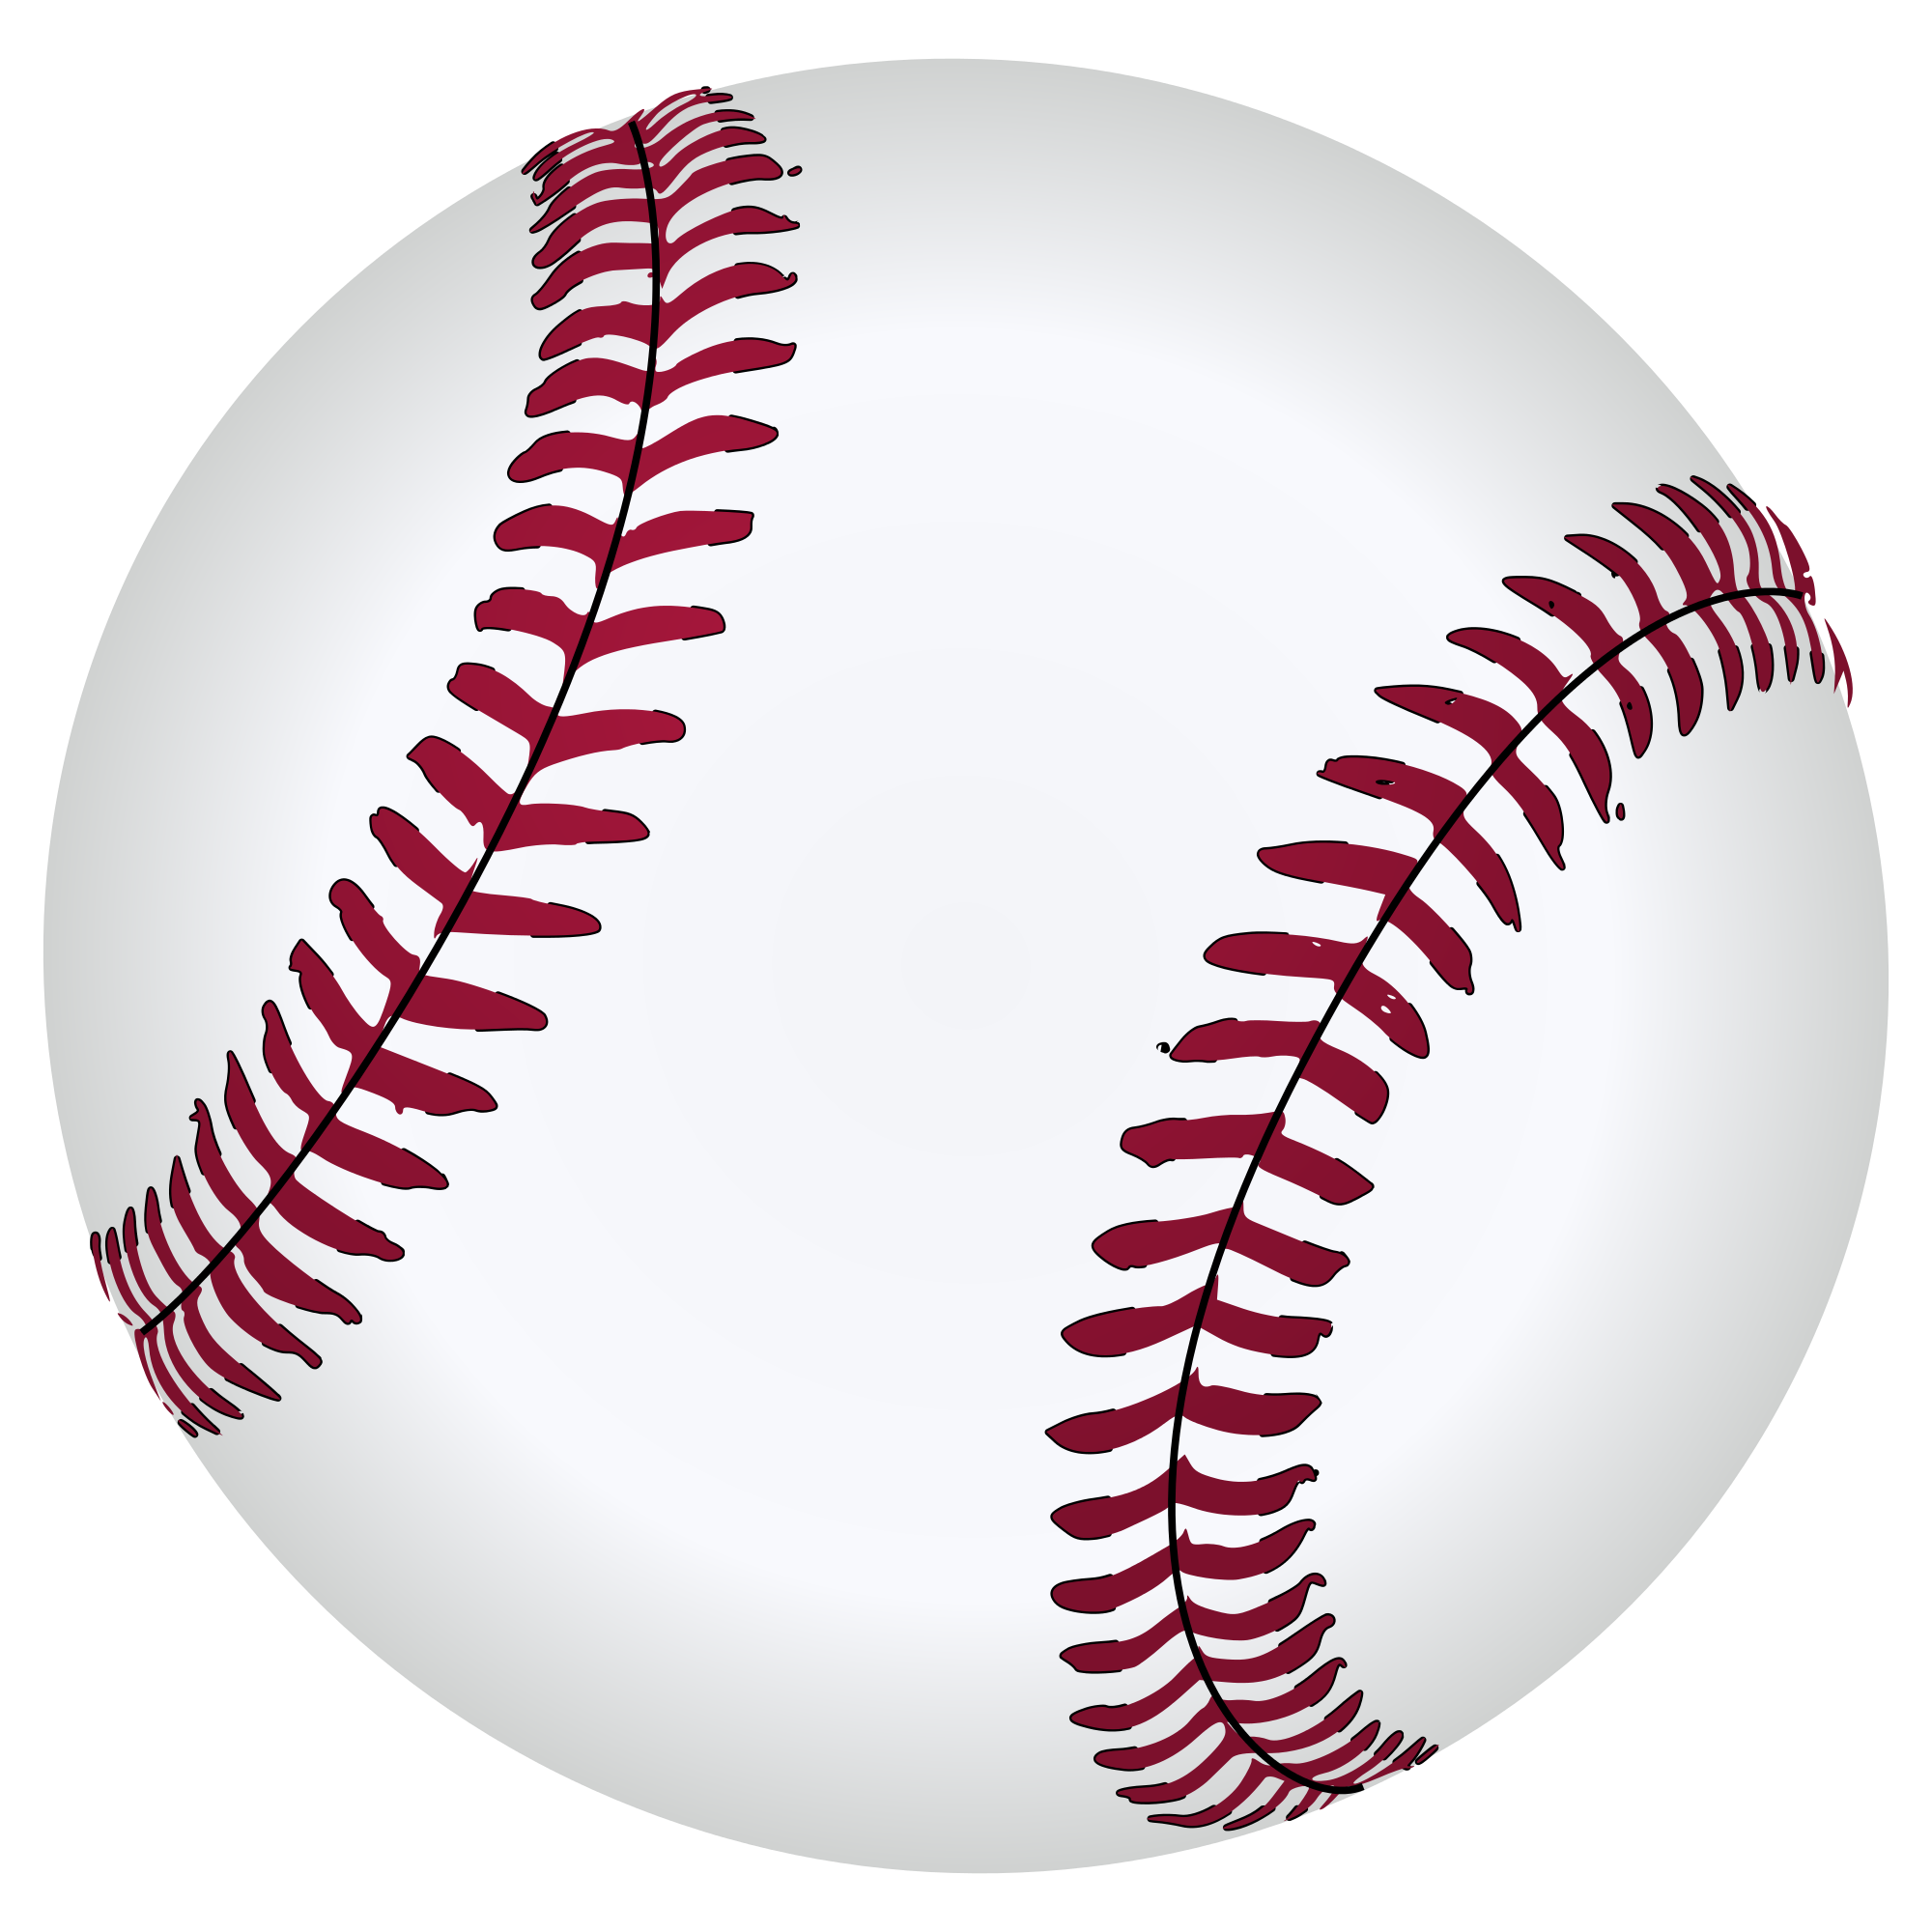 Baseball clipart catch graphic Baseball Ball Drawing at GetDrawings.com | Free for personal use ... graphic